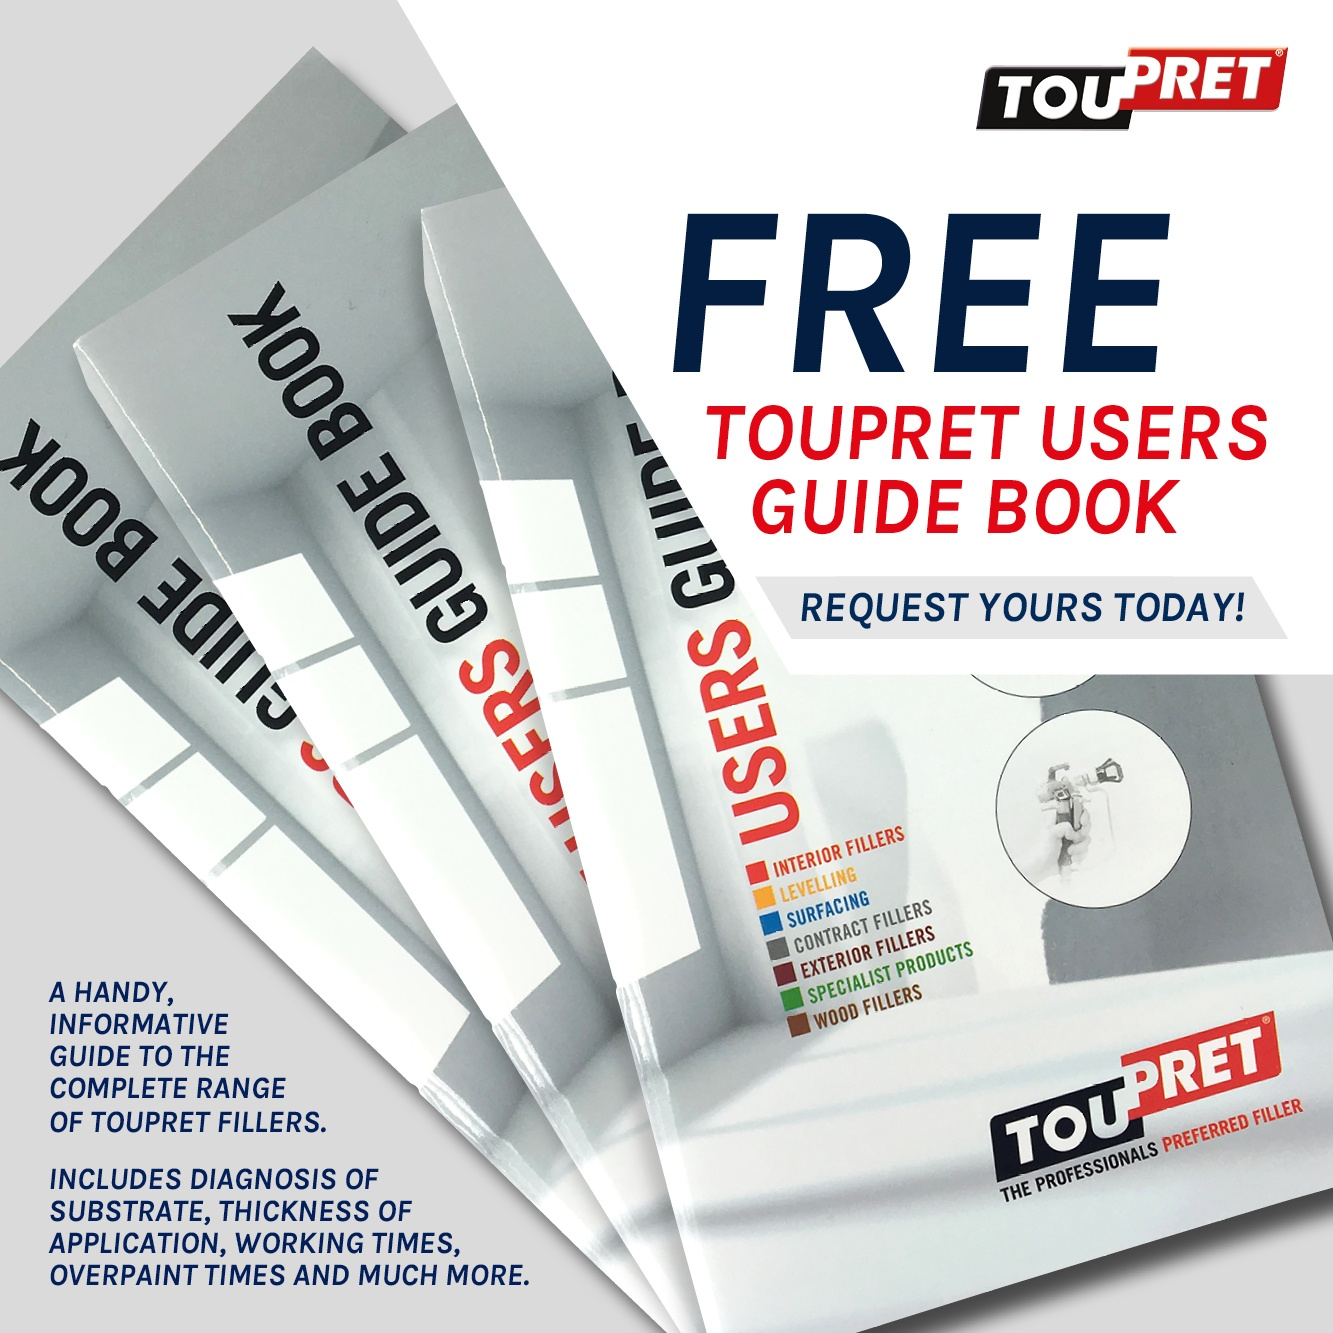 Toupret User Guide Landing Page 1000x1000 1017.jpg